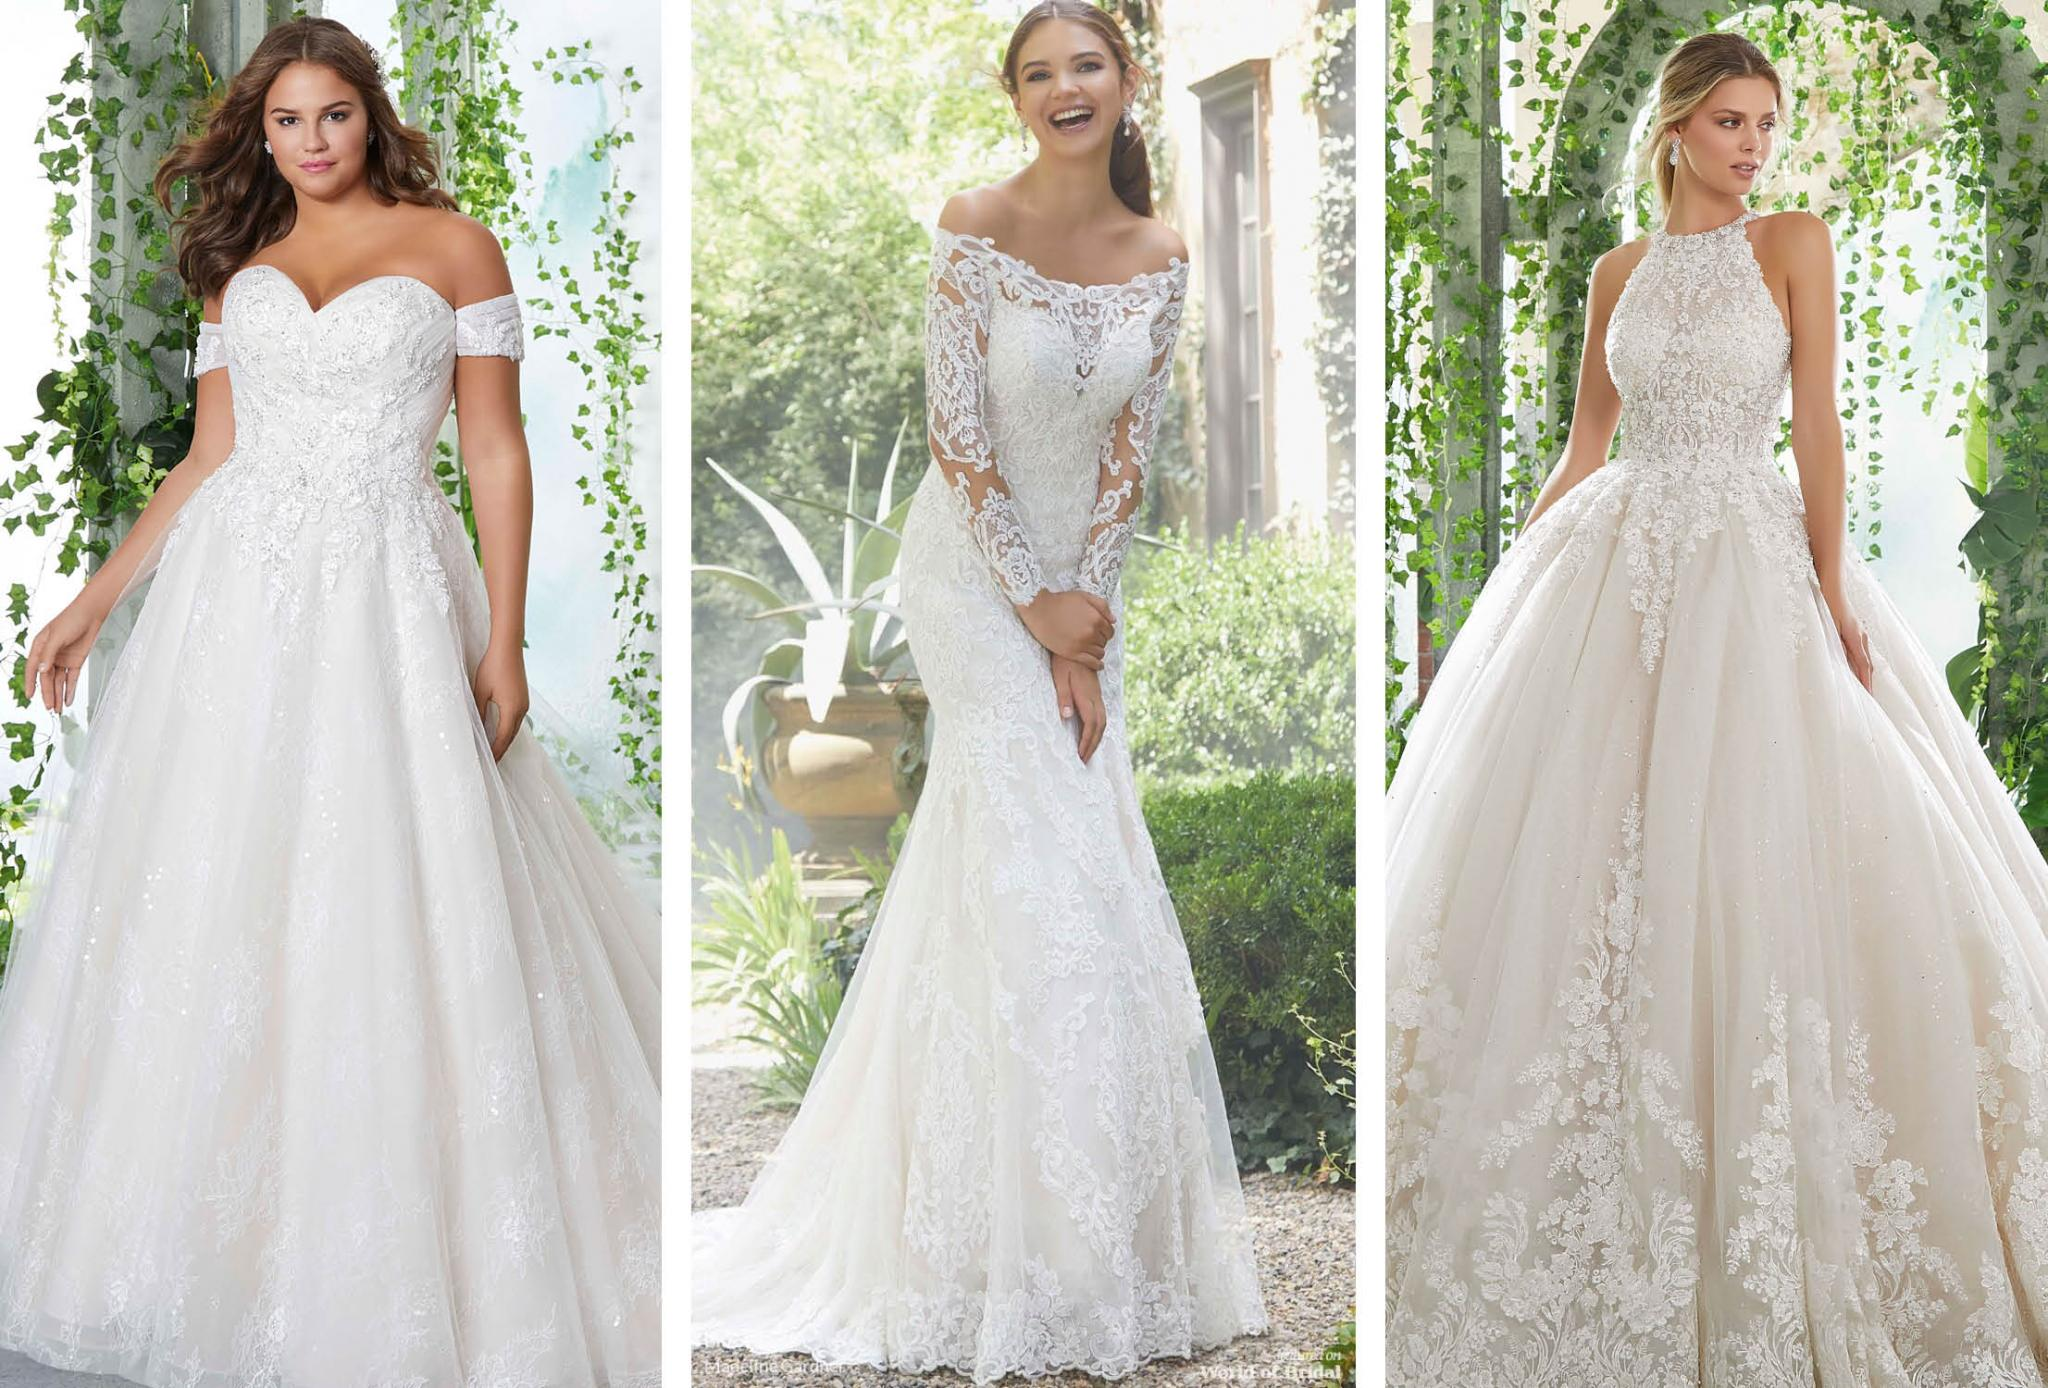 Mori Lee by Madeline Gardner Trunk Show at Eva's Bridal International in Orland Park, IL